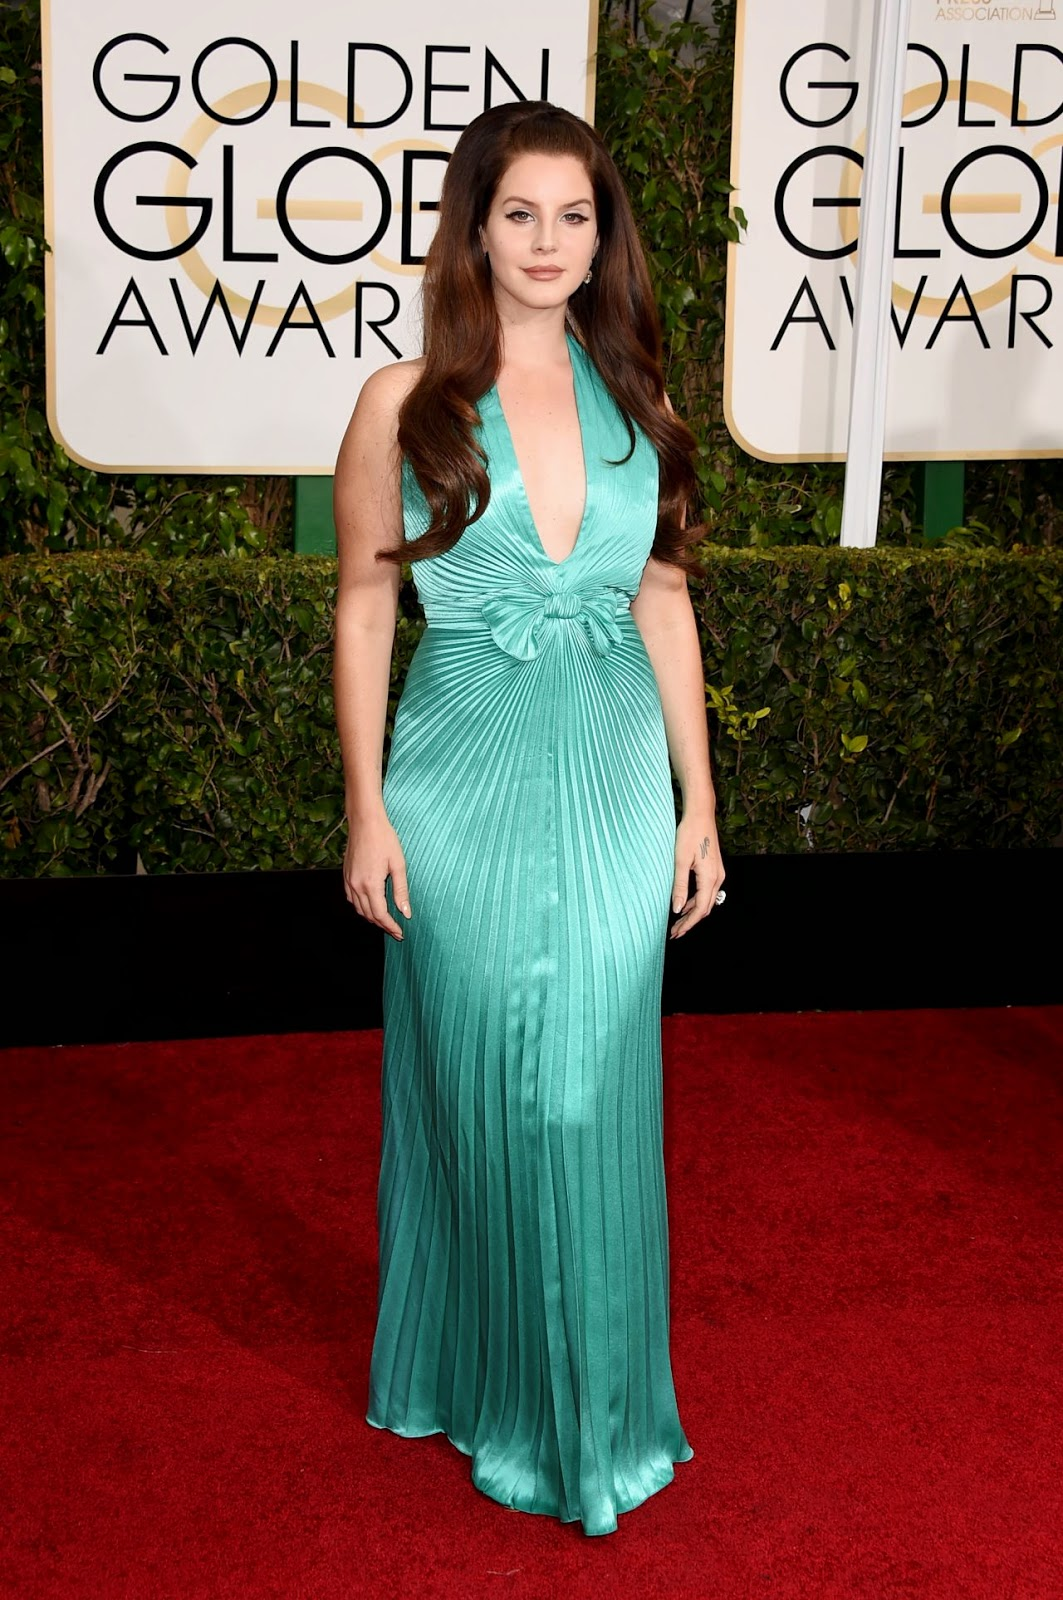 Lana Del Rey sizzles in a retro-style turquoise green dress at the 2015 Golden Globes